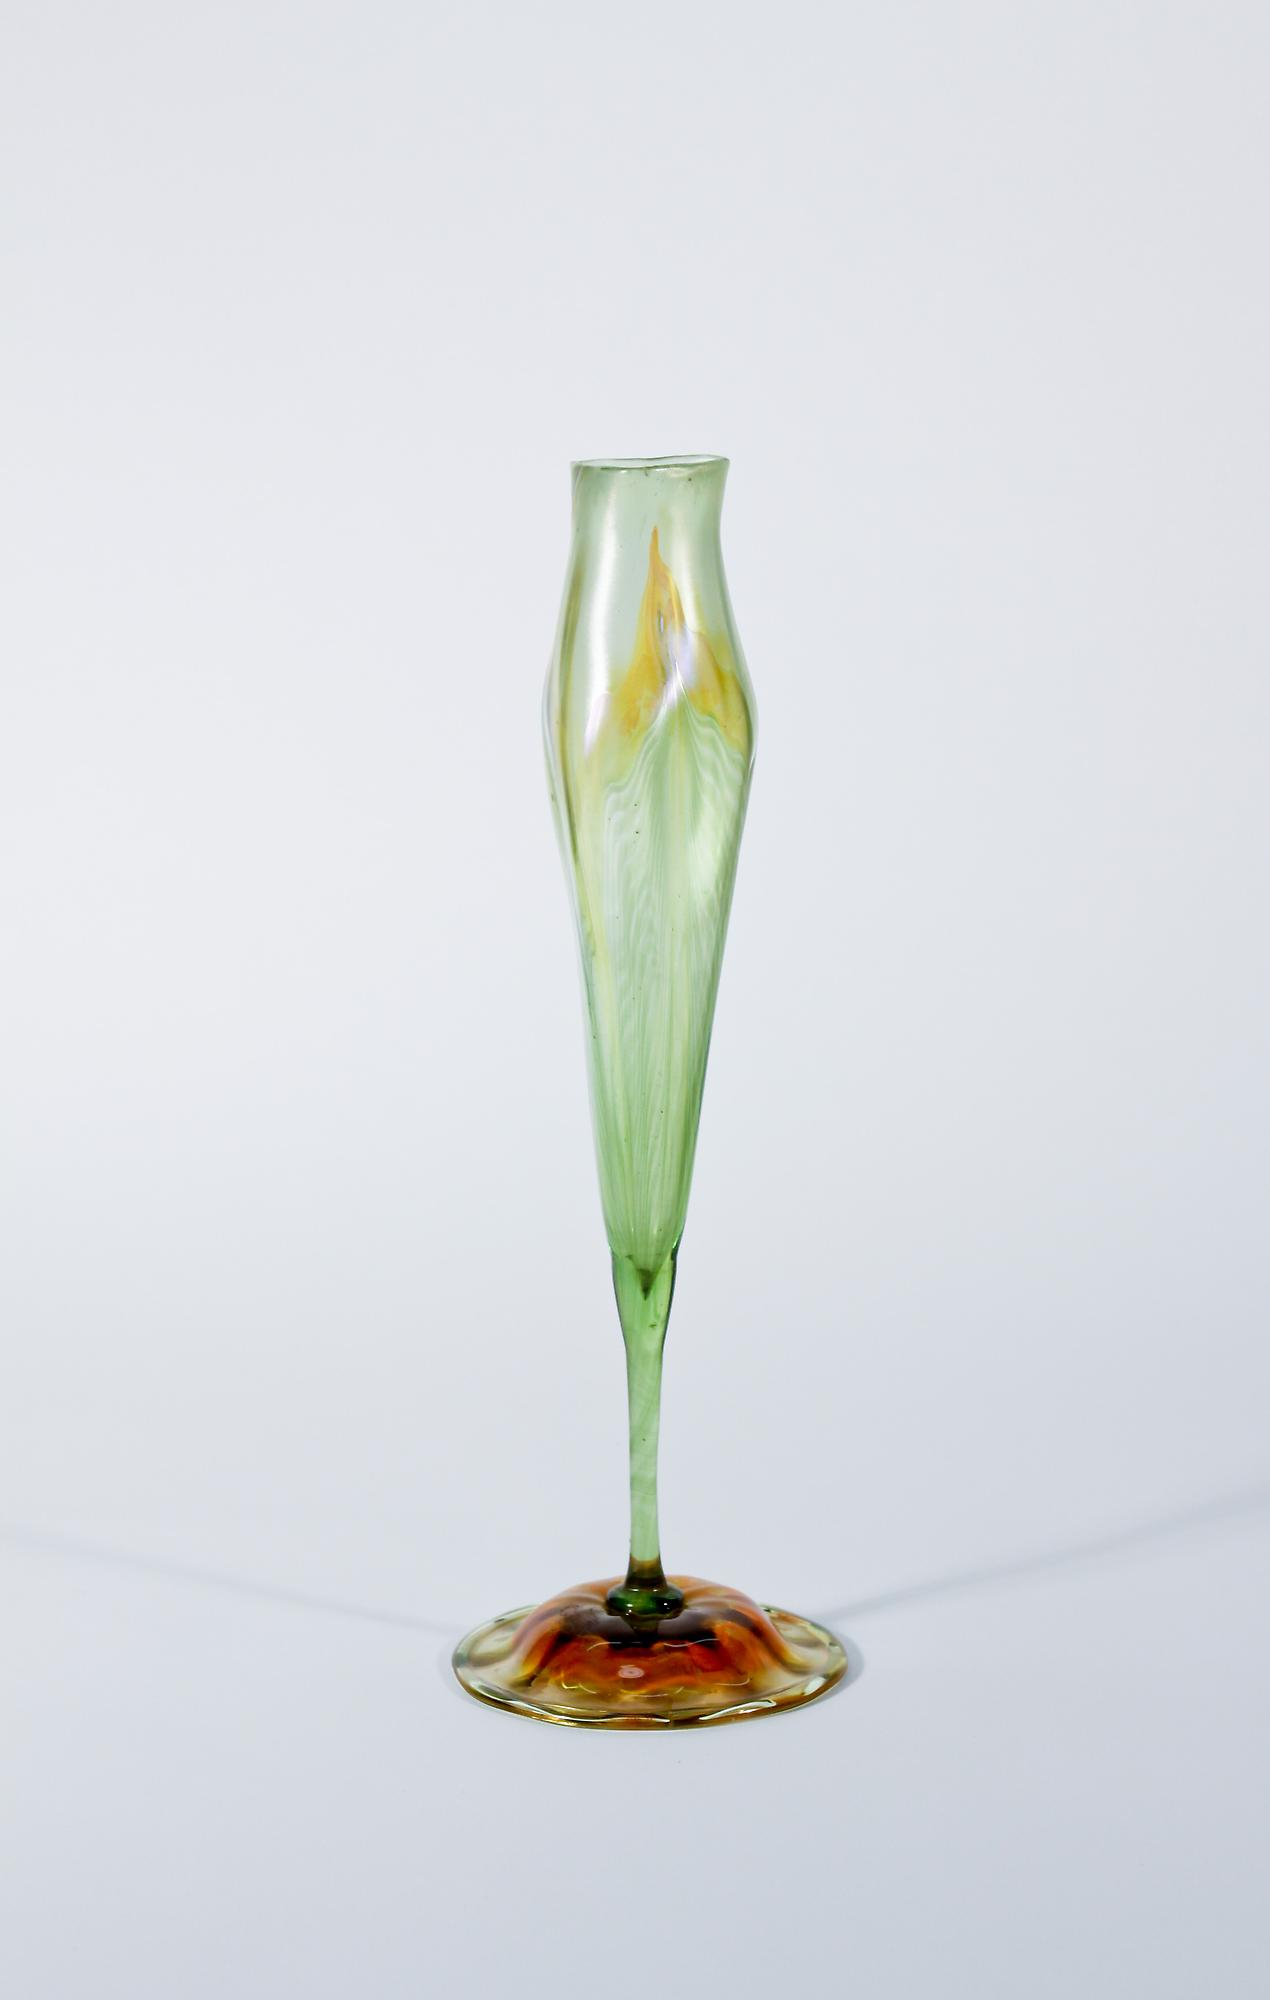 Tiffany Favrile Glass  Calyx Flower Form Vase 2